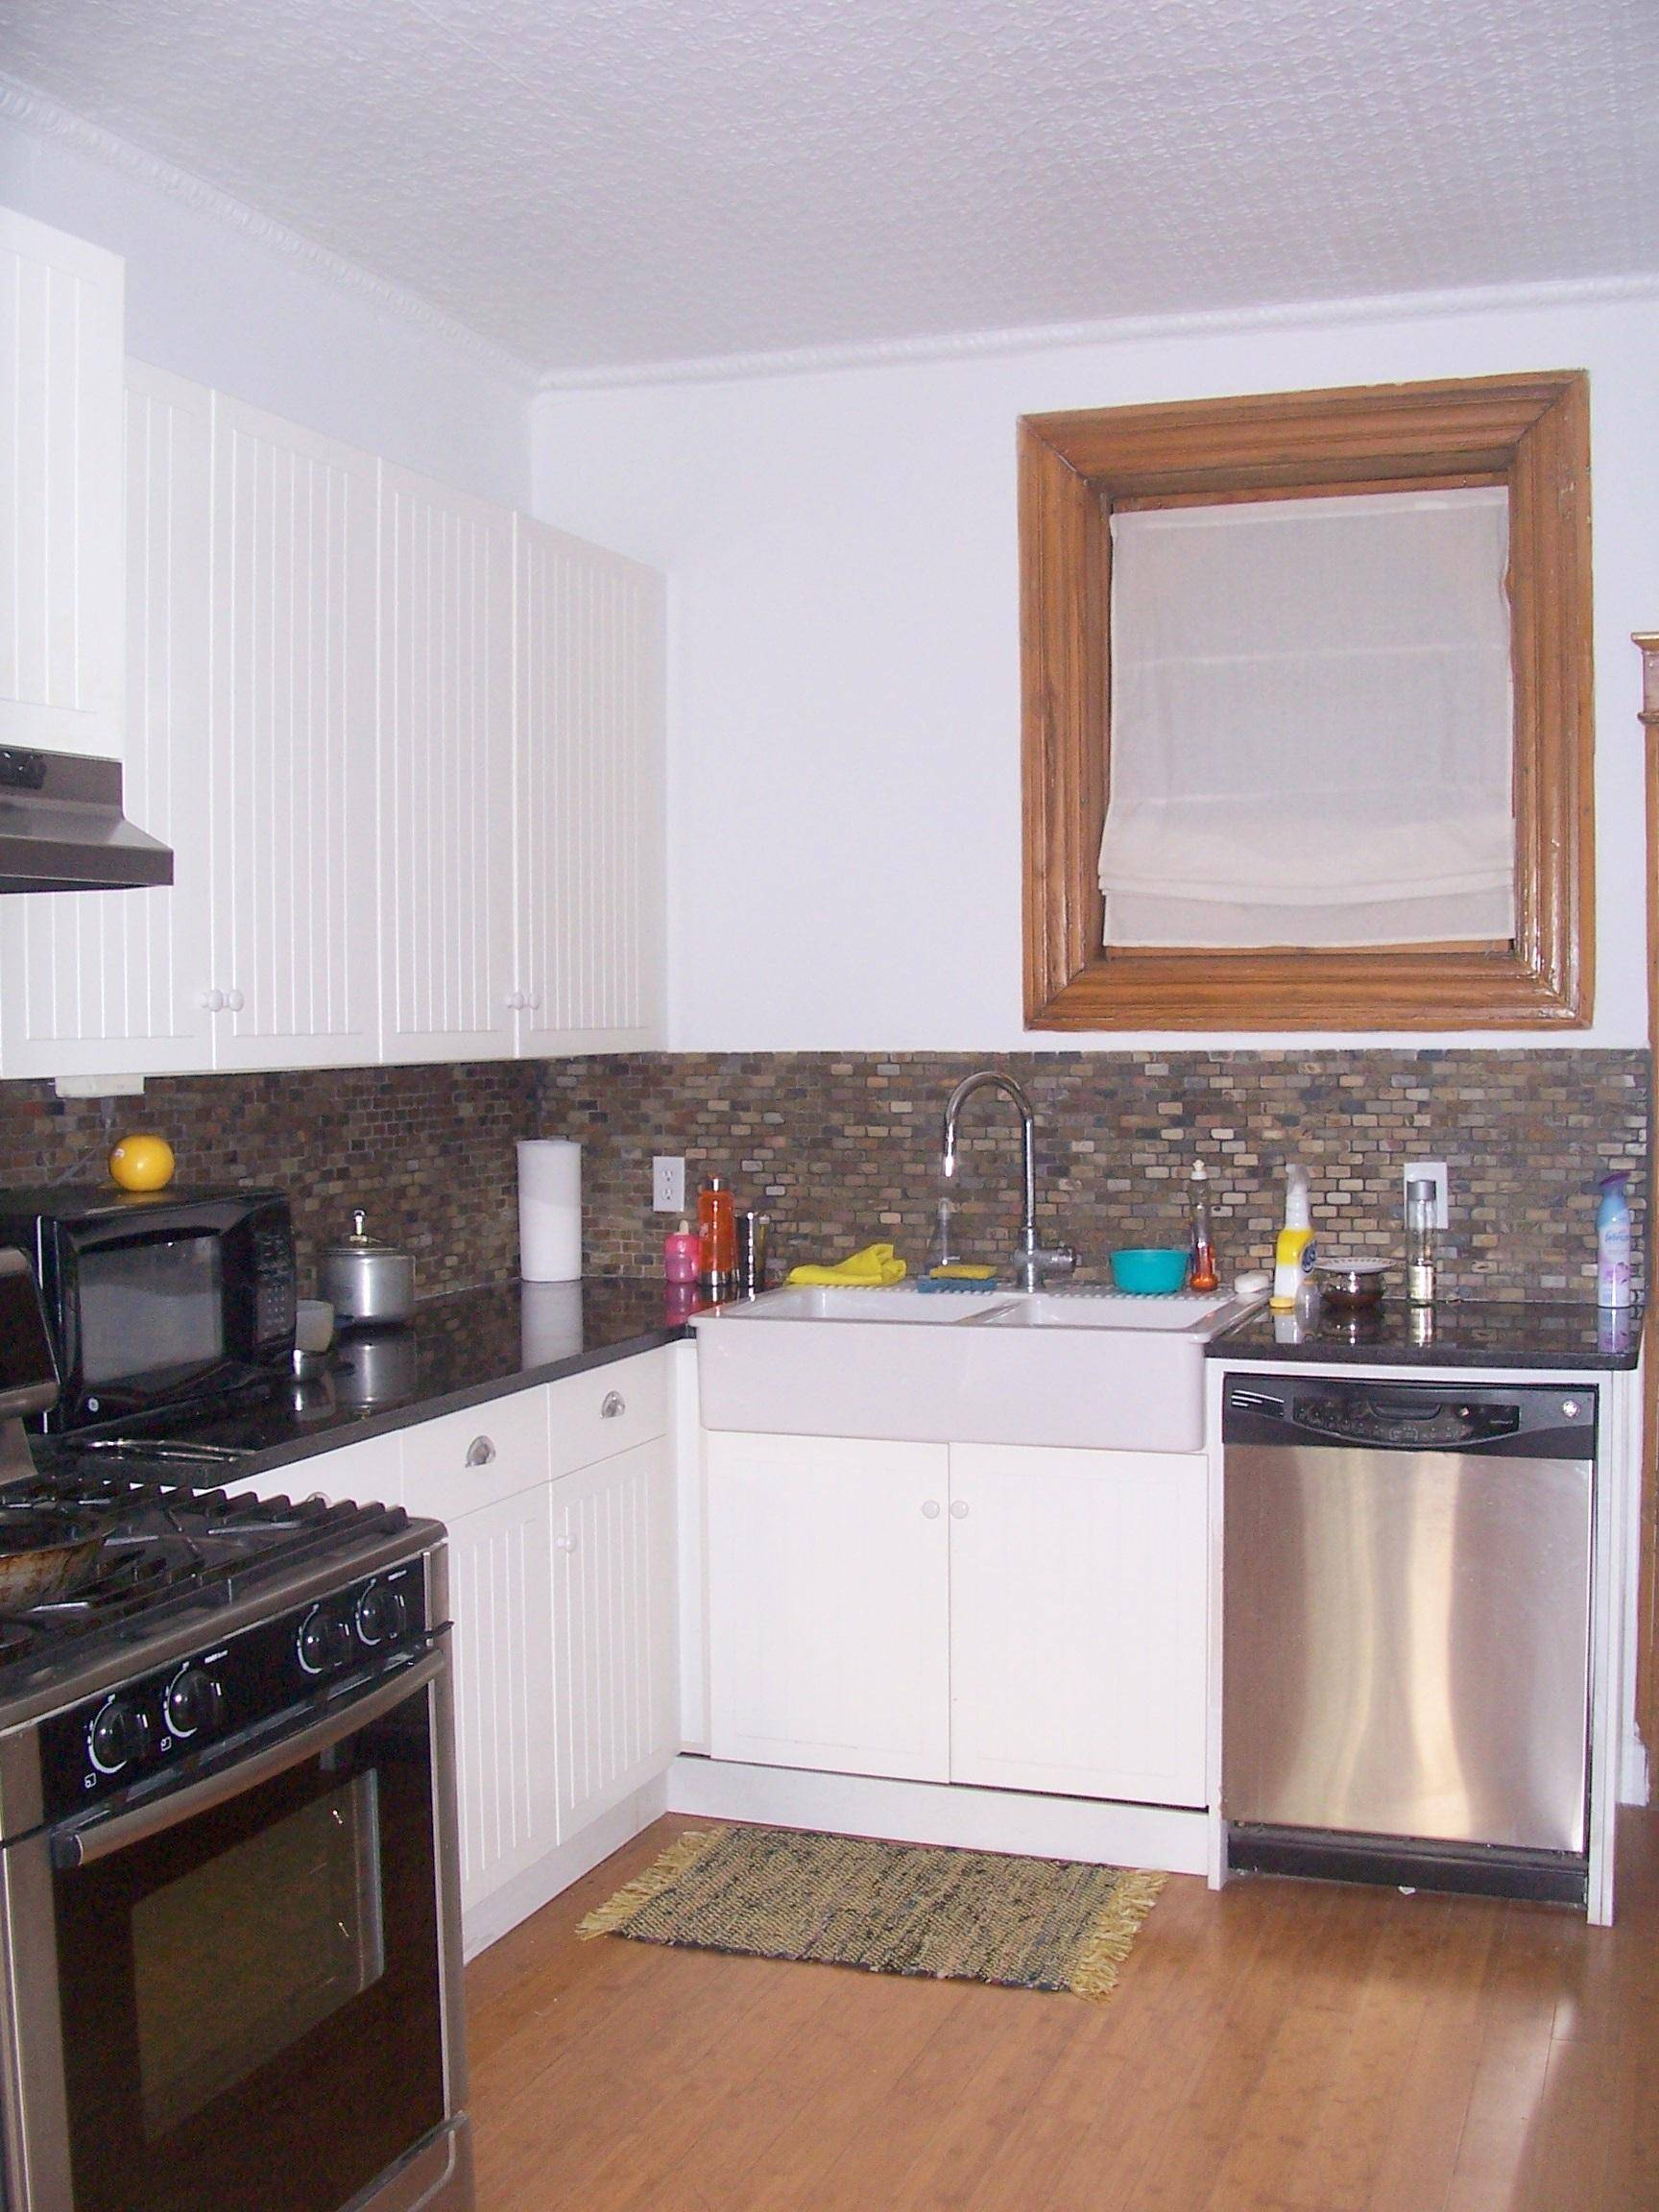 Apartment For Rent in Journal Square Jersey City 07306